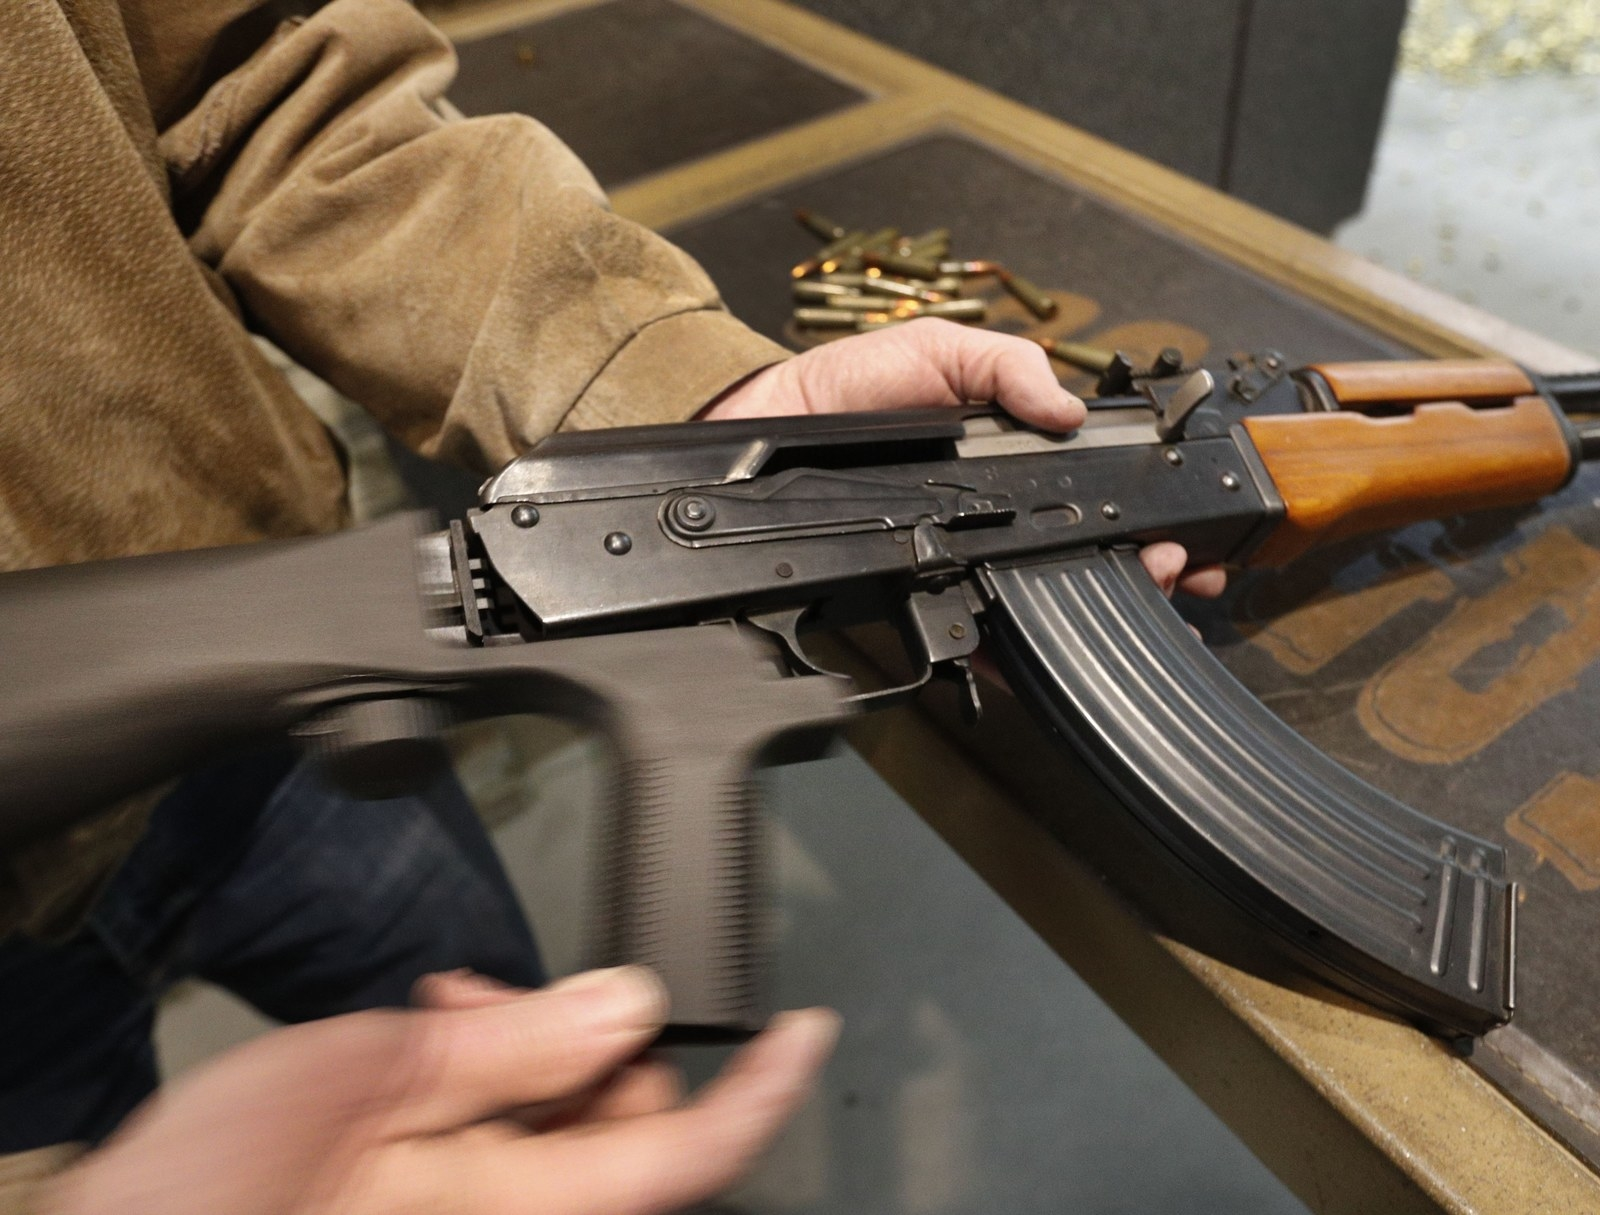 The US Supreme Court Is Letting The Trump Administration's Bump Stock Ban Take Effect